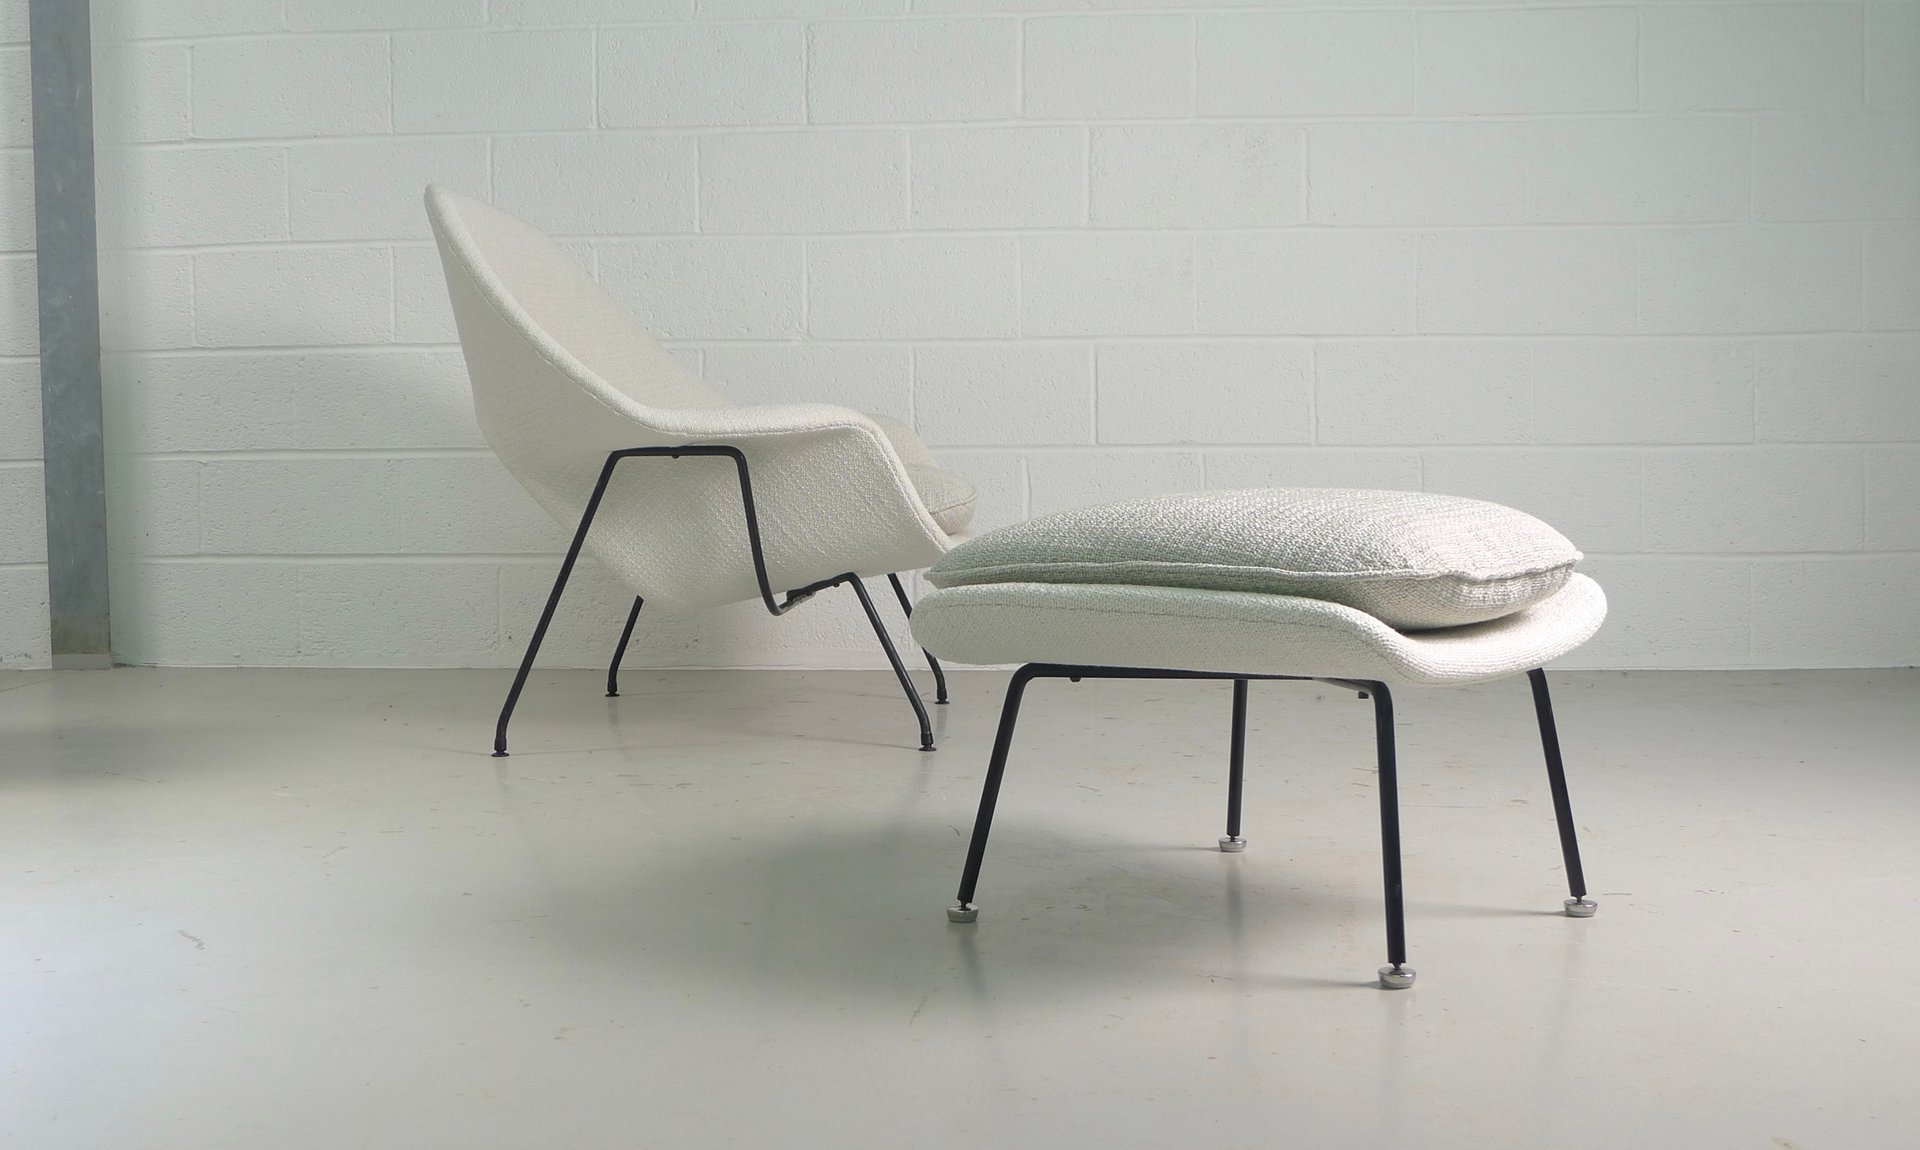 Vintage Womb Chair and Ottoman by Eero Saarinen for Knoll for sale